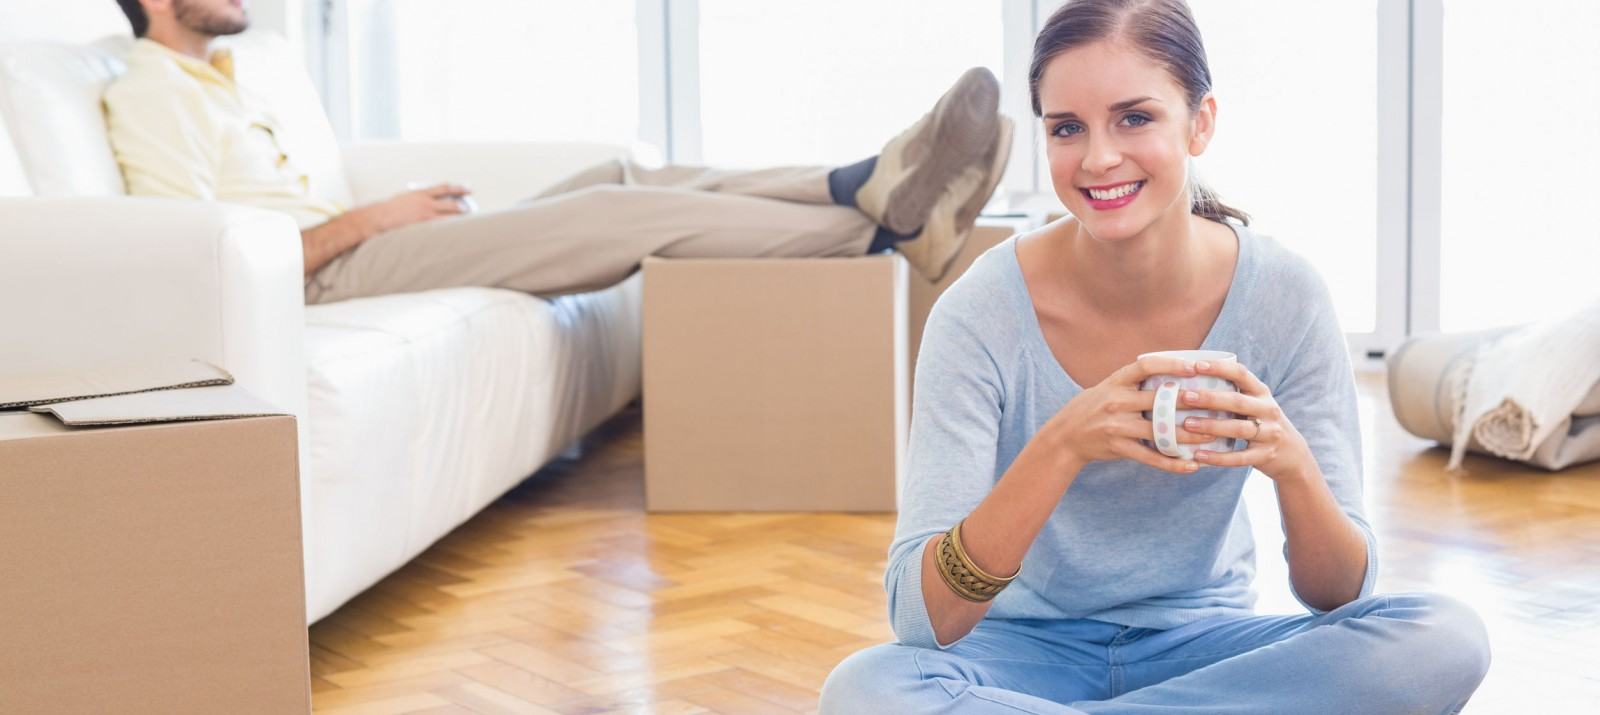 A woman is sitting on the floor of an apartment and holding a coffee mug while a man is sitting on a couch with his feet atop moving boxes.